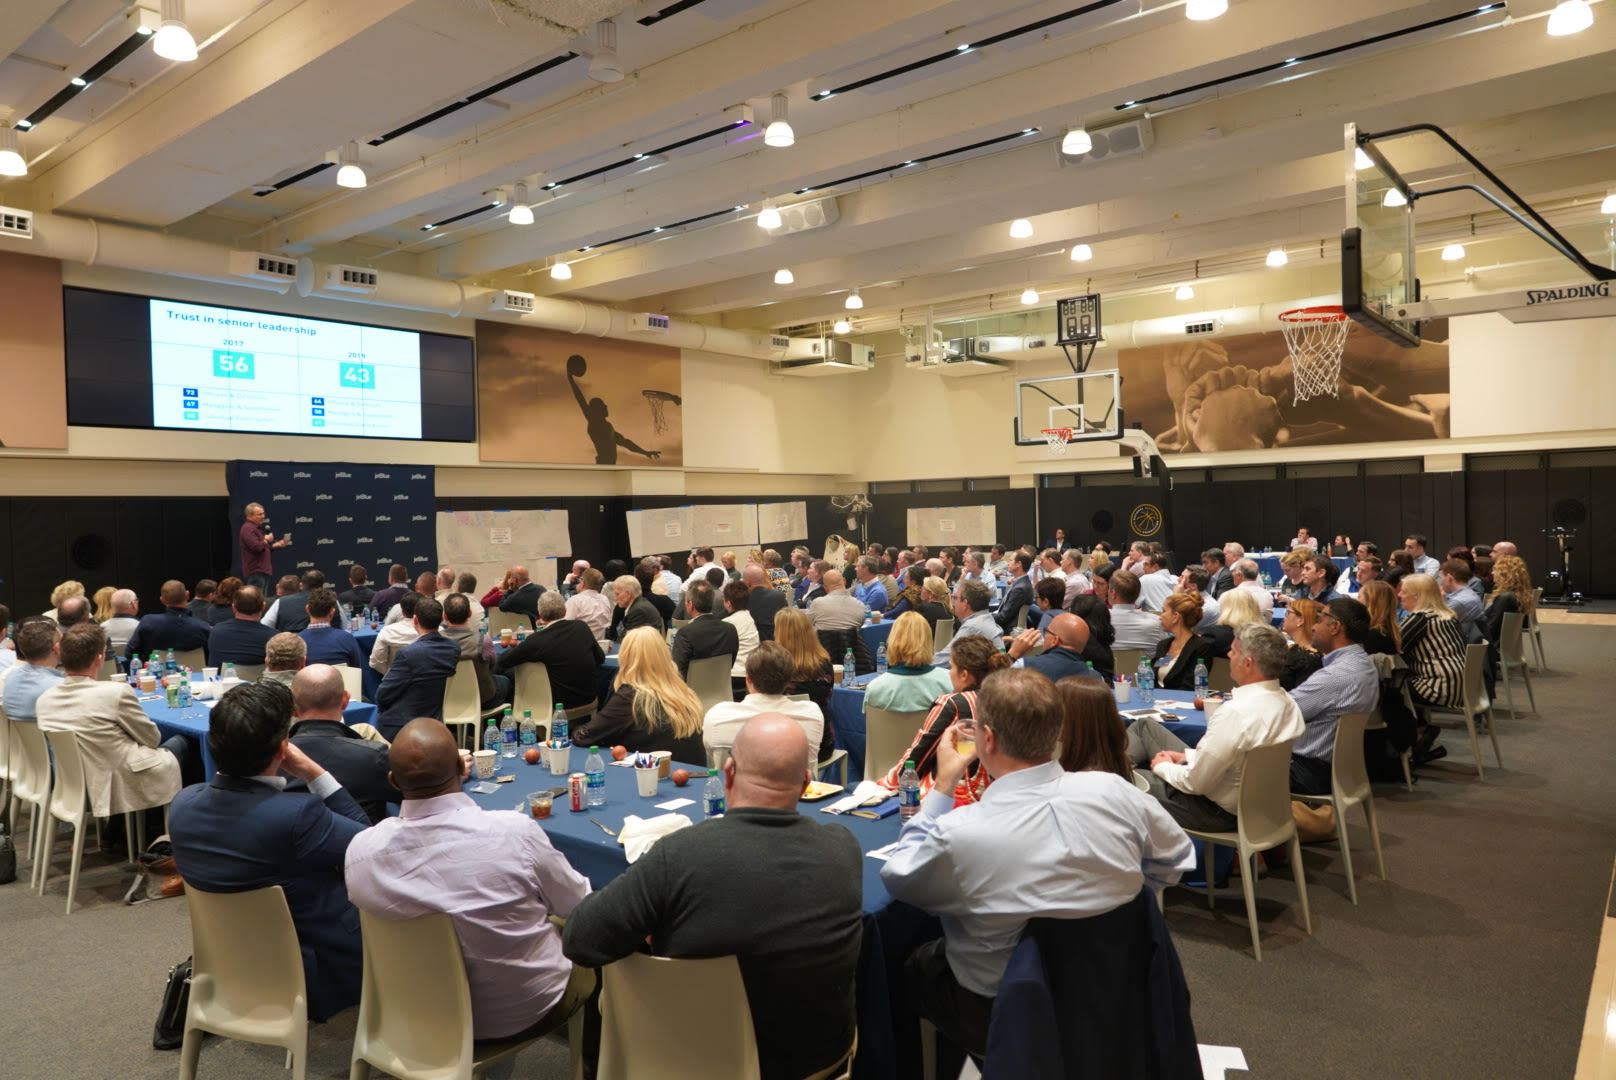 JetBlue Airways recently hosted their annual Officer and DirectorLeadership Reception at the PA